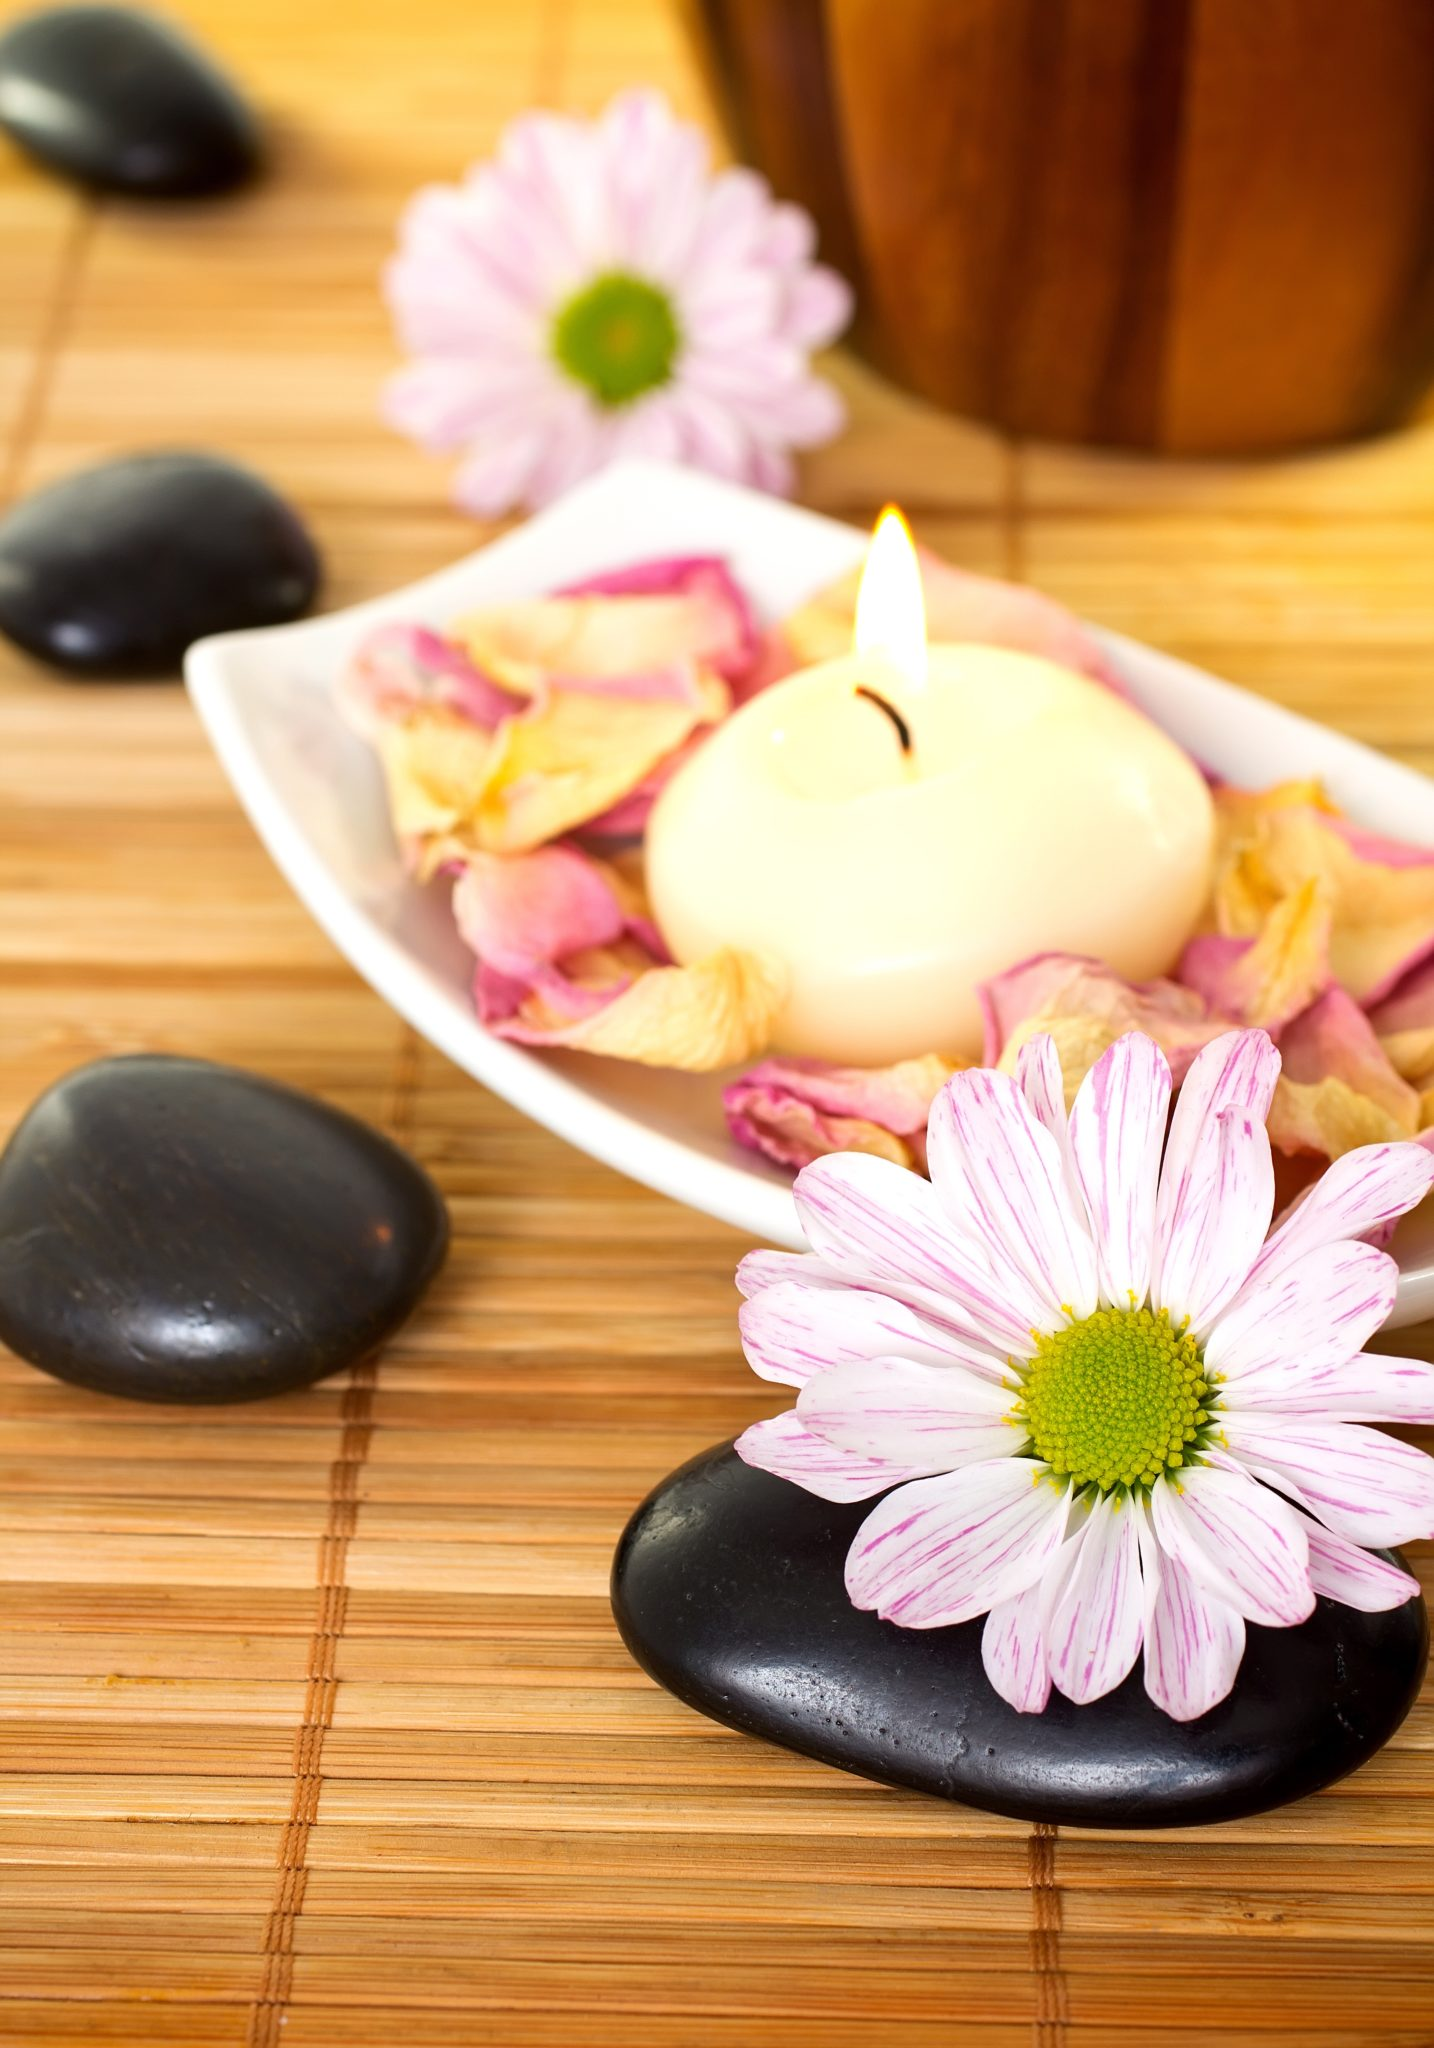 Spa treatment with stones, candles and flowers.